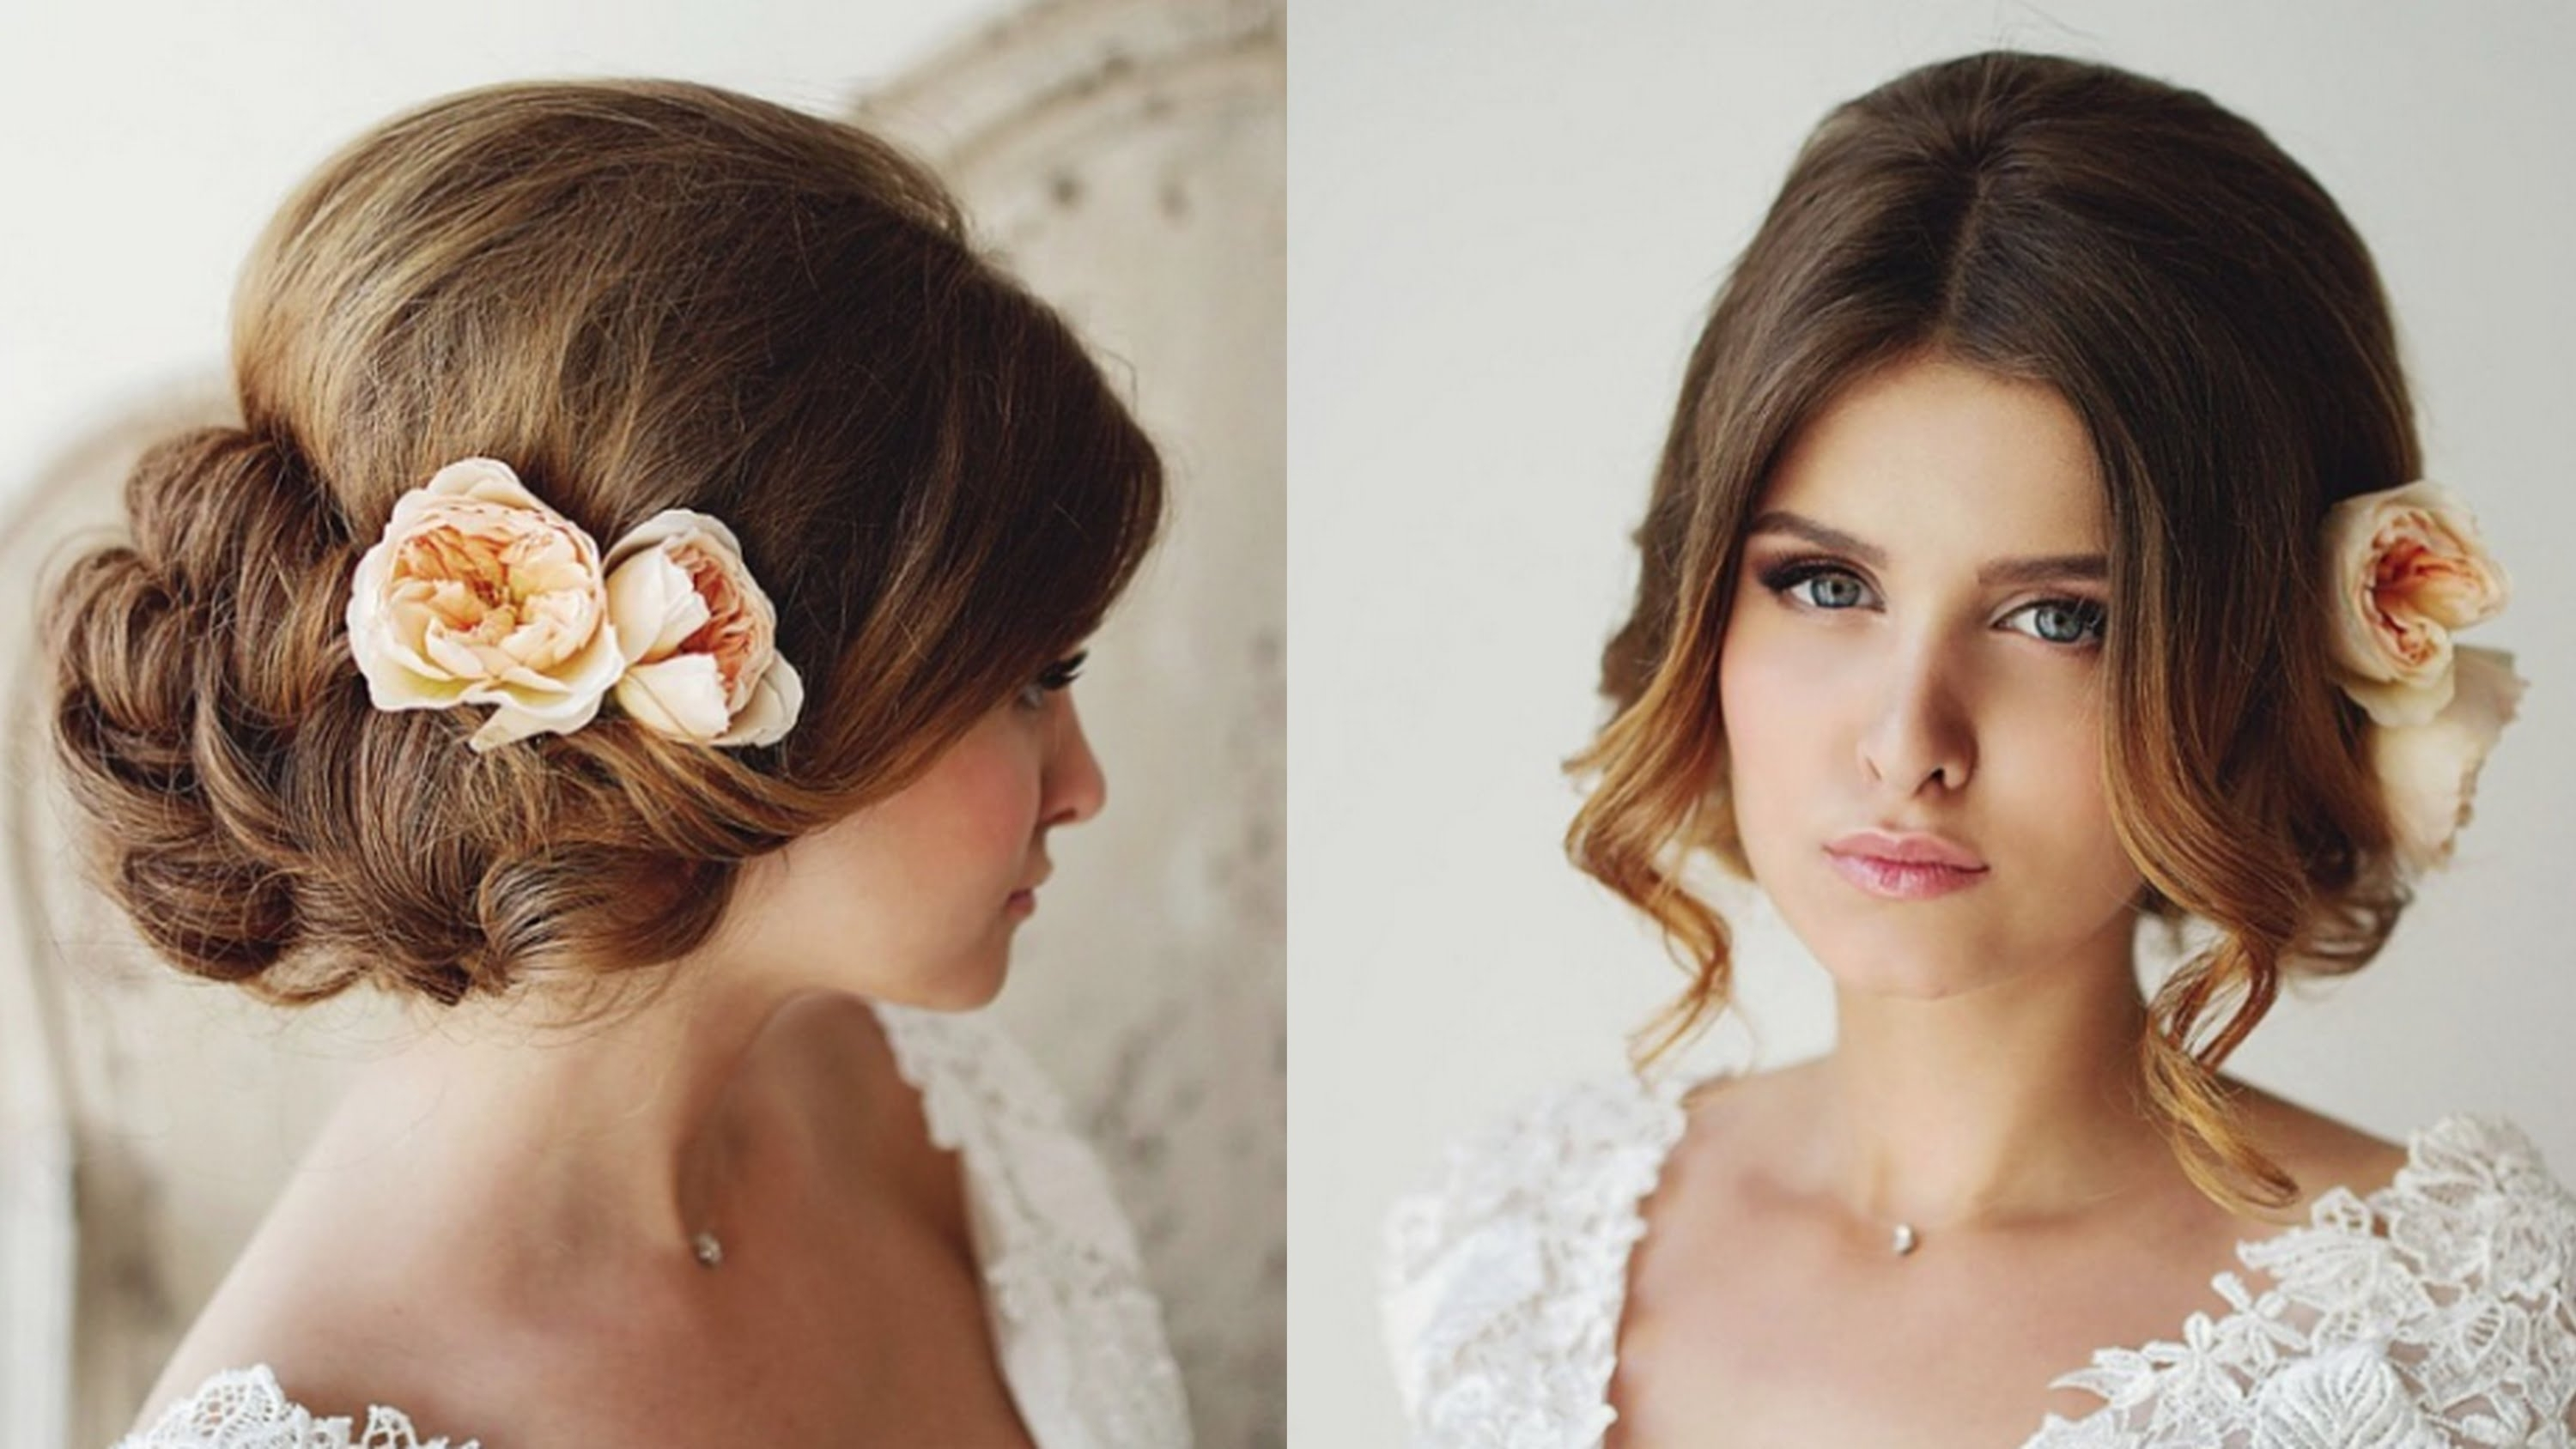 26 Beautiful Wedding Hairstyles For Bridal – Youtube With Trendy Wedding Hairstyles For Bridesmaids (View 3 of 15)